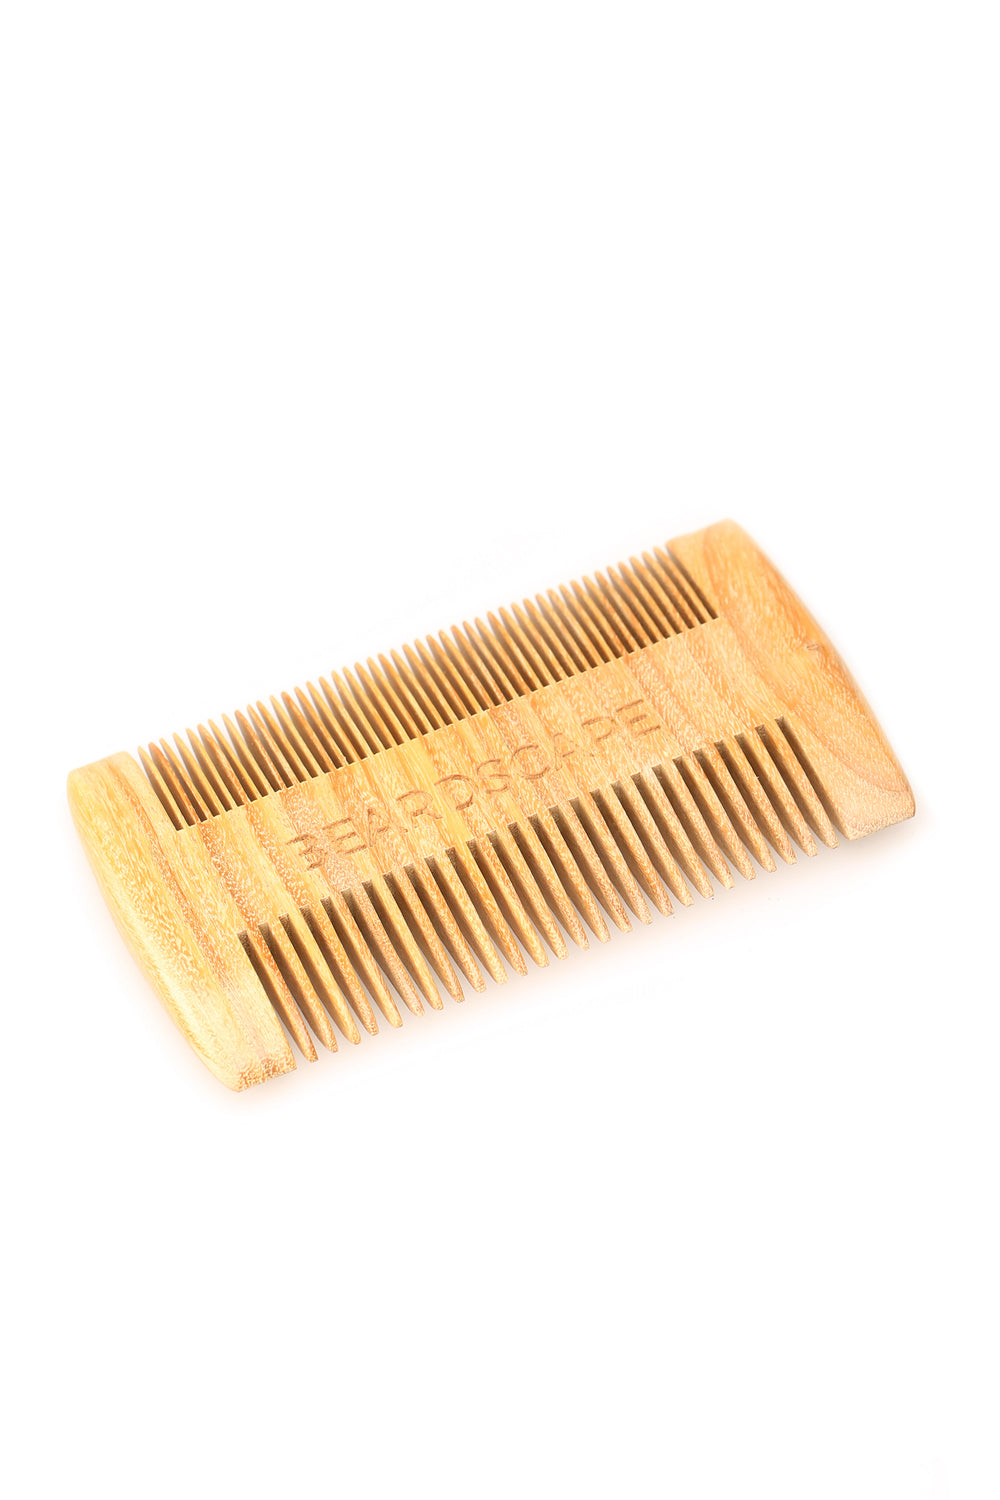 Sandalwood Beard Comb - Brown